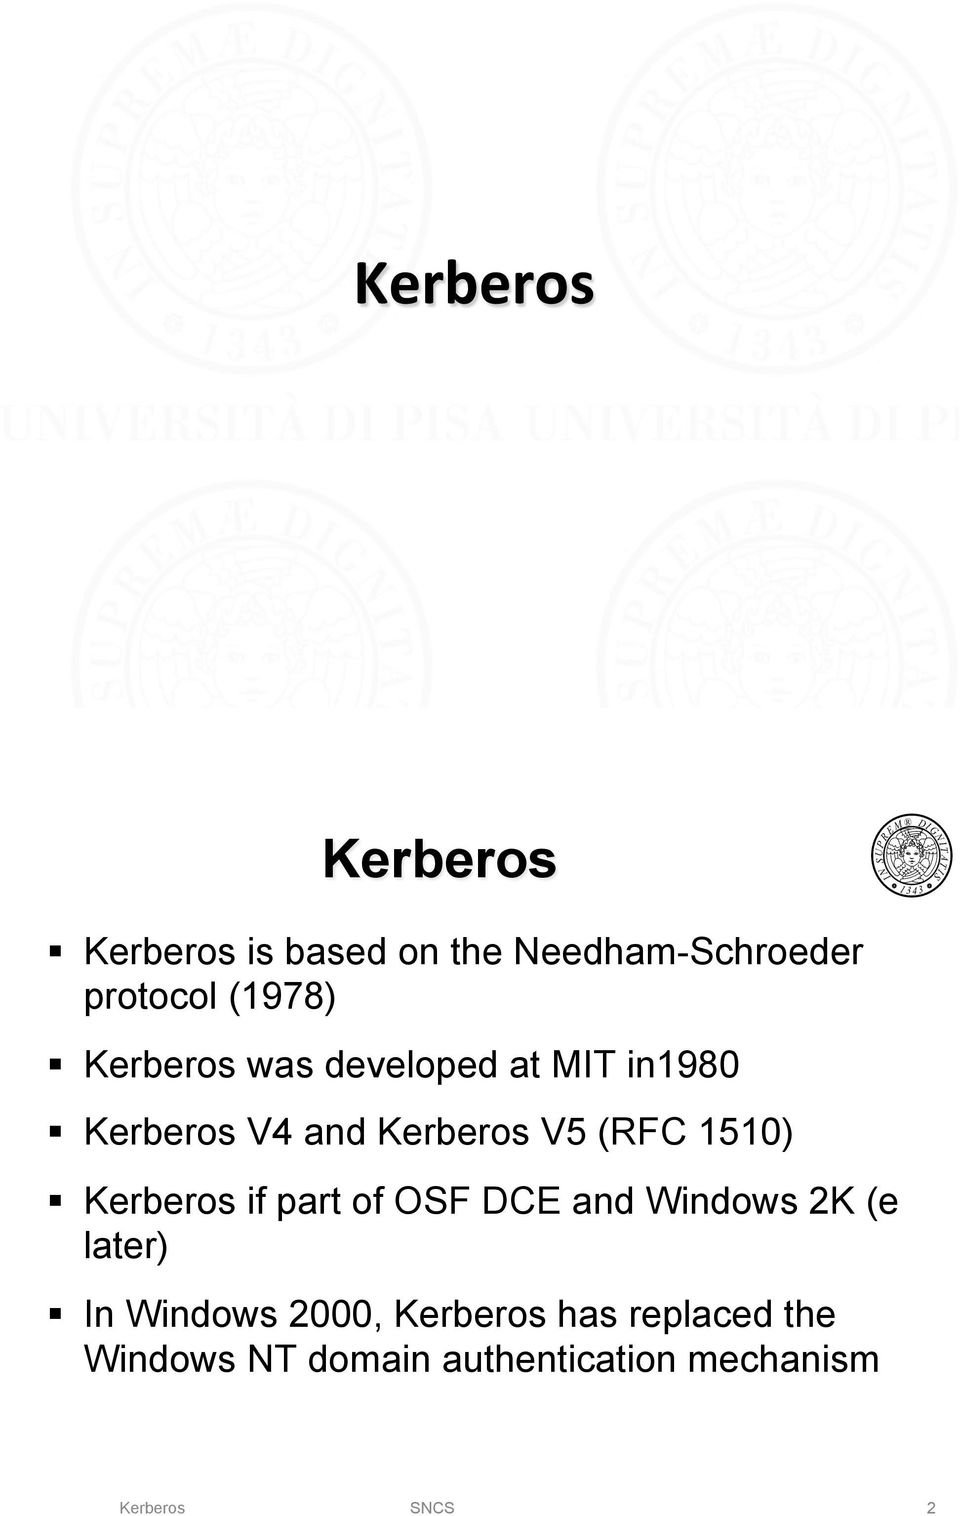 erberos was developed at MIT in1980!